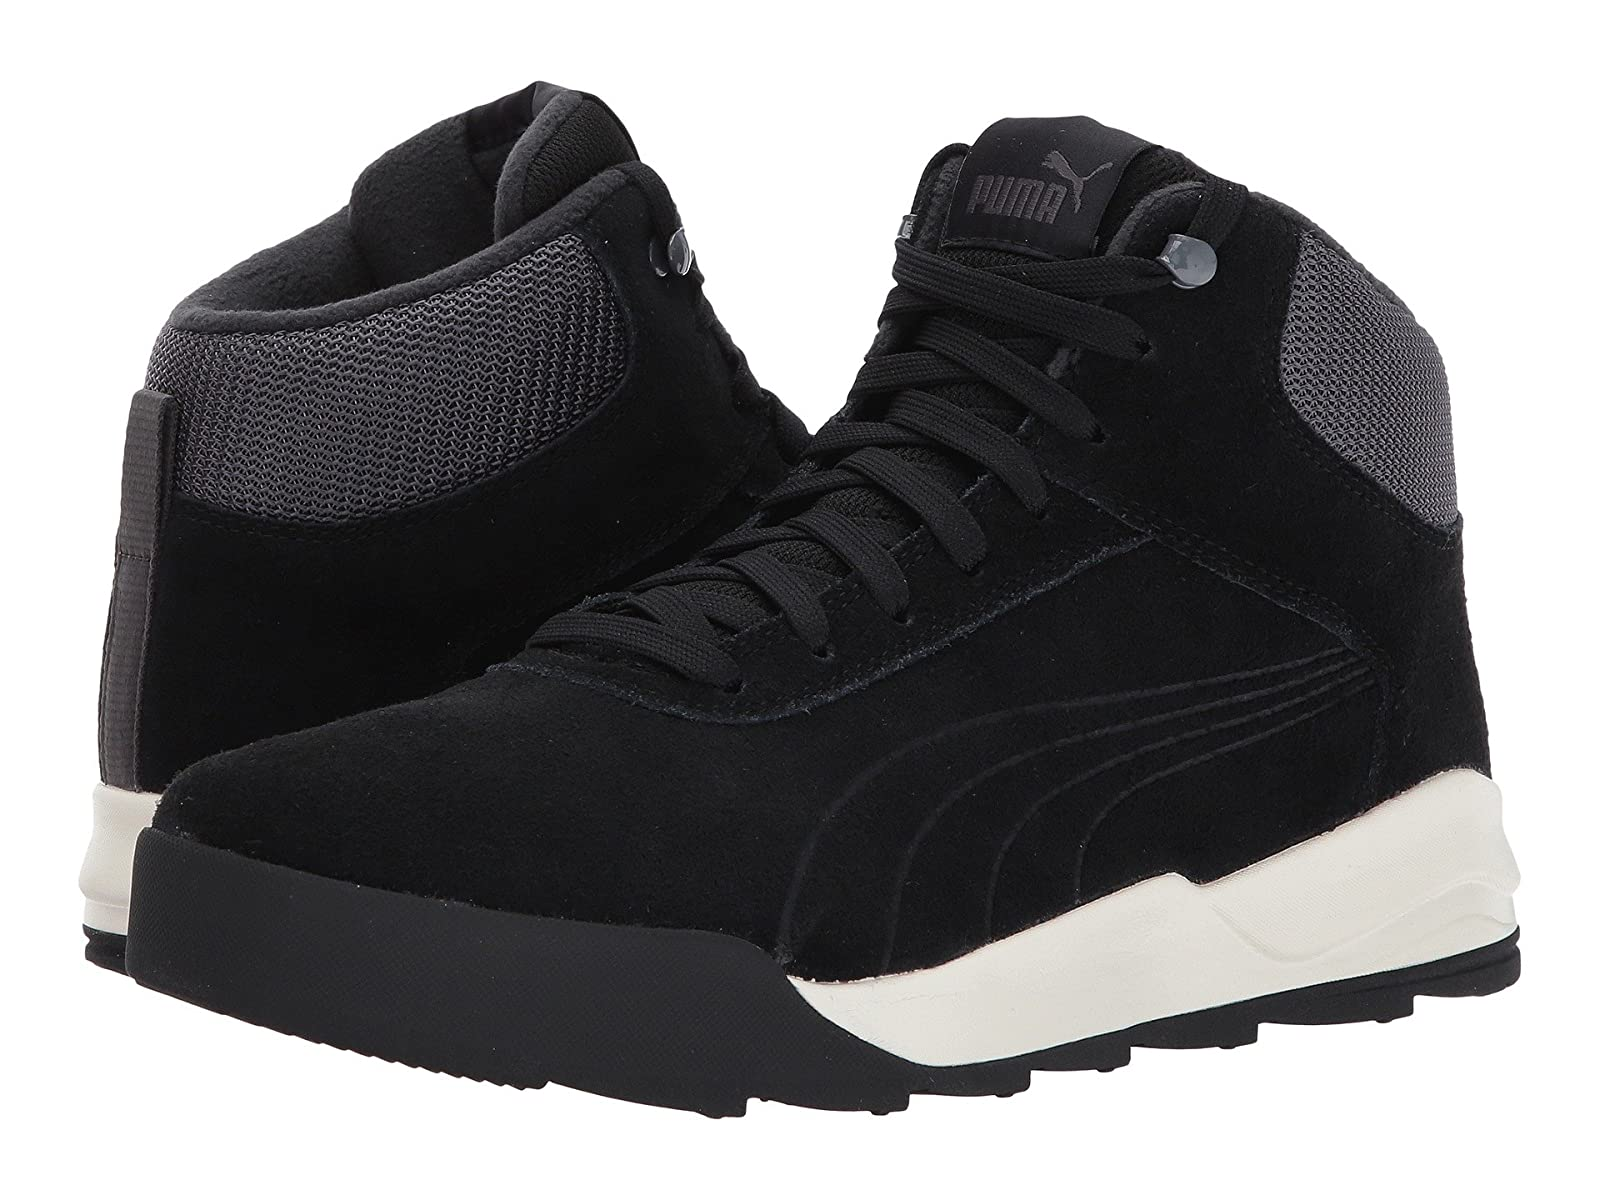 PUMA Desierto SneakerCheap and distinctive eye-catching shoes